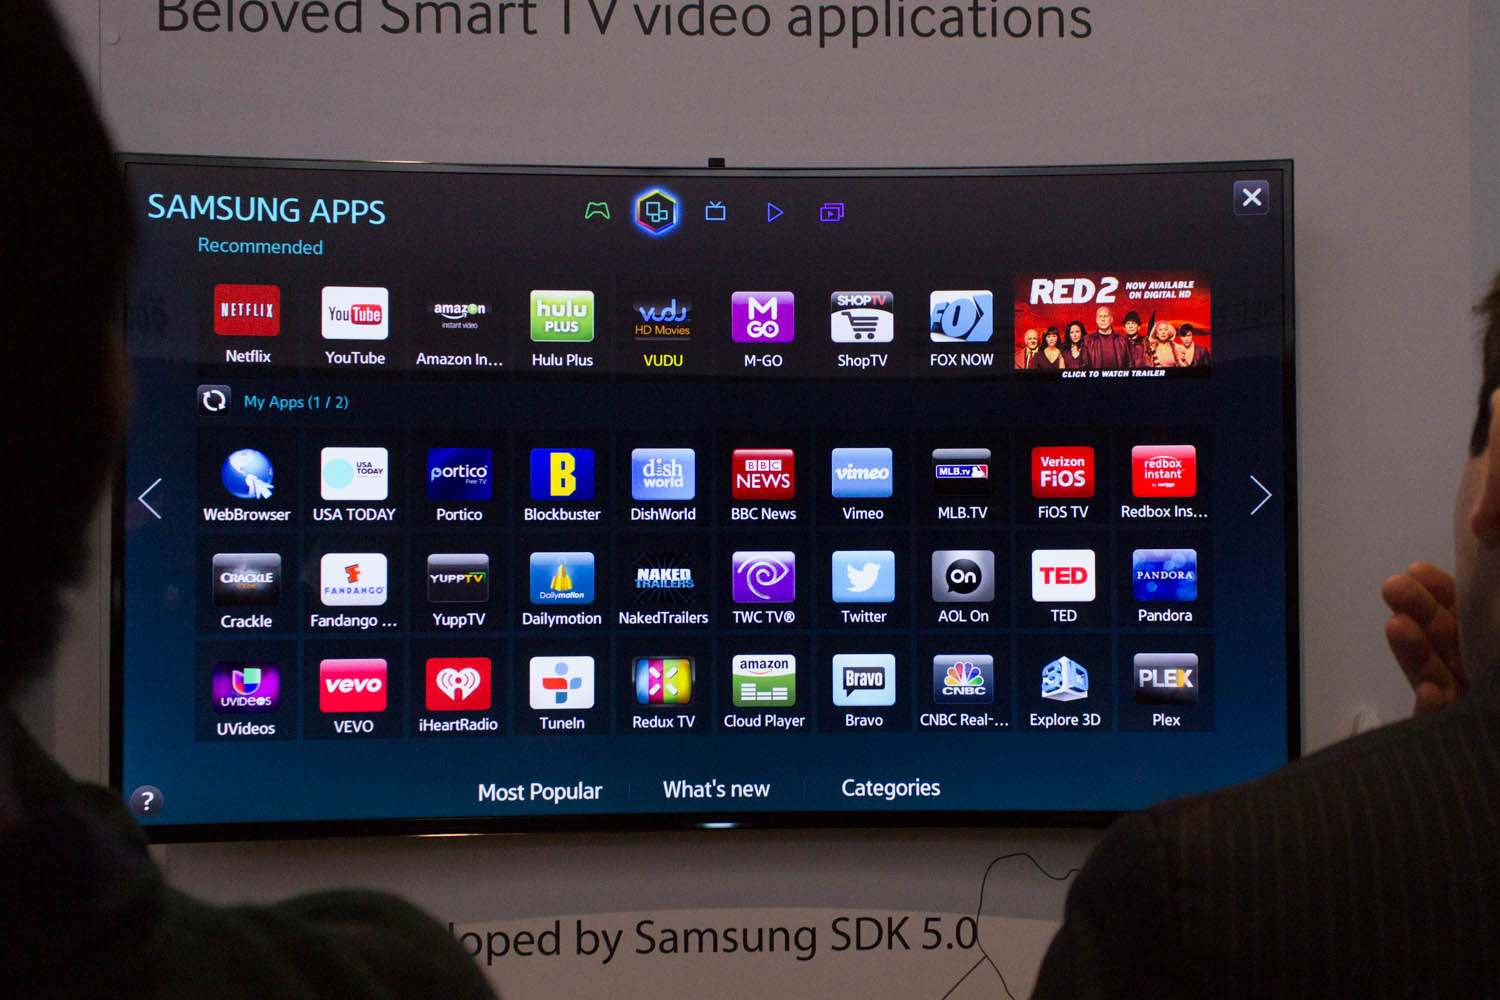 Samsung showed a curved 4K model last year, and this year decided to take them mainstream.